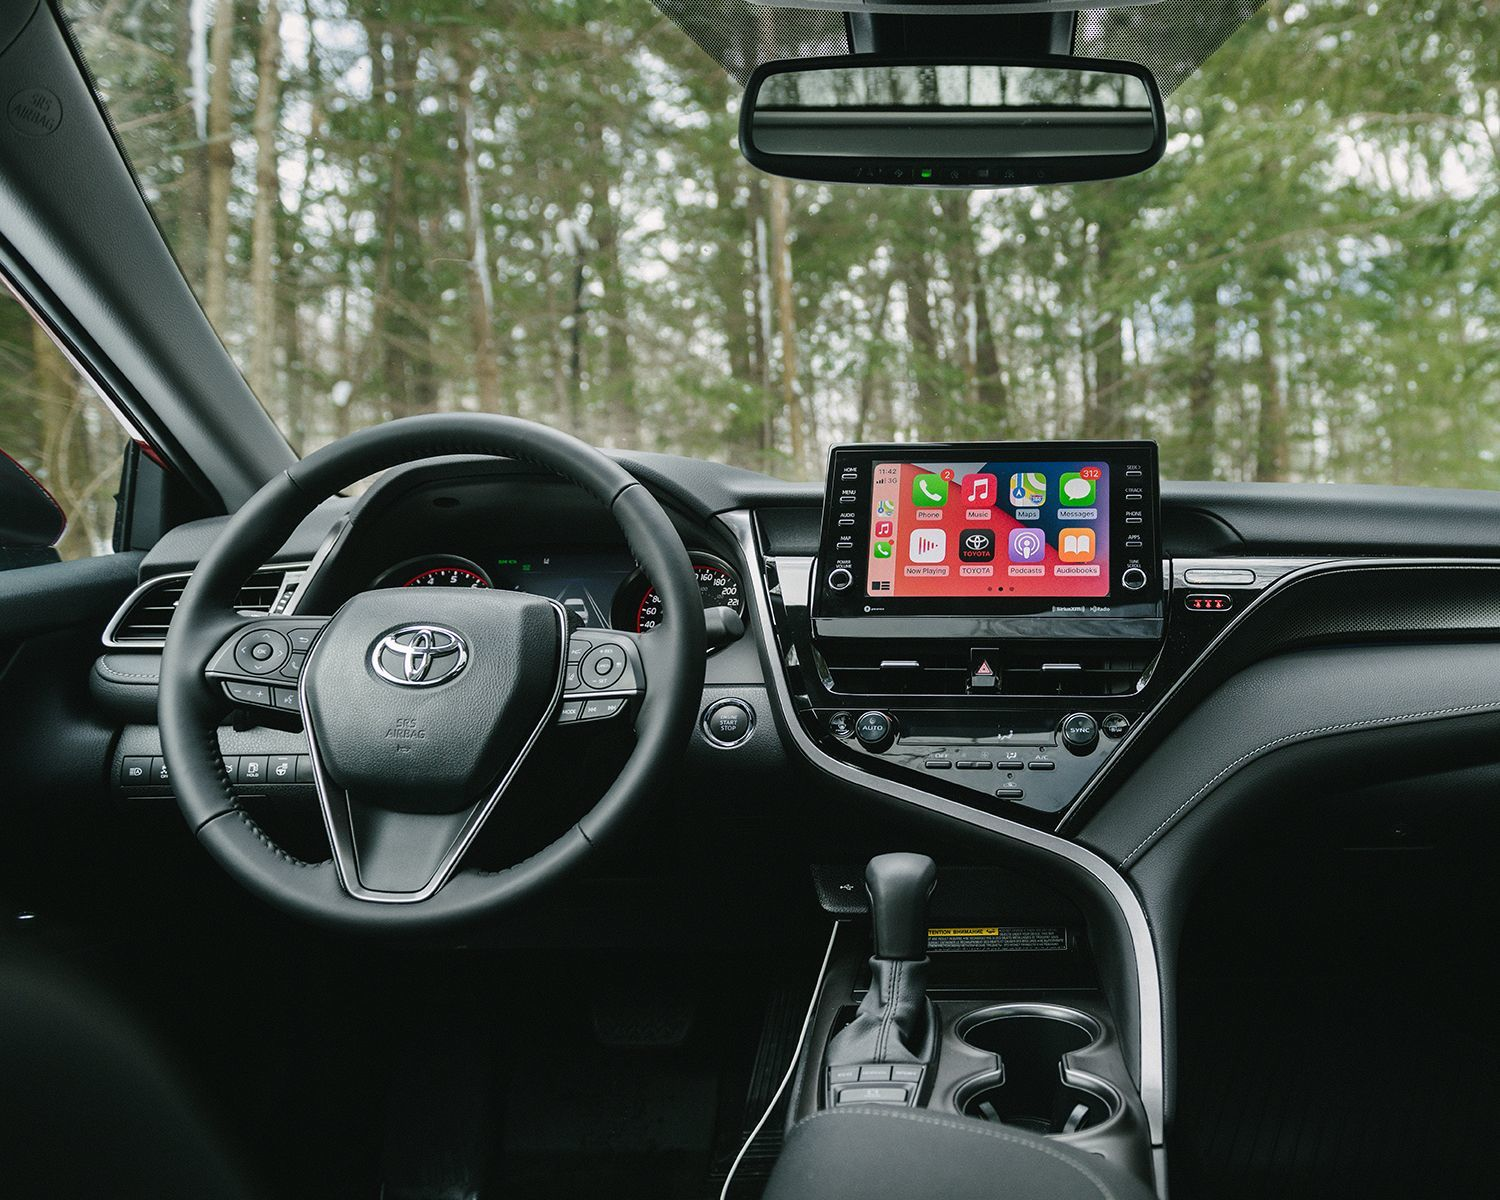 Camry XSE AWD shown with Black Sports Leather Interior